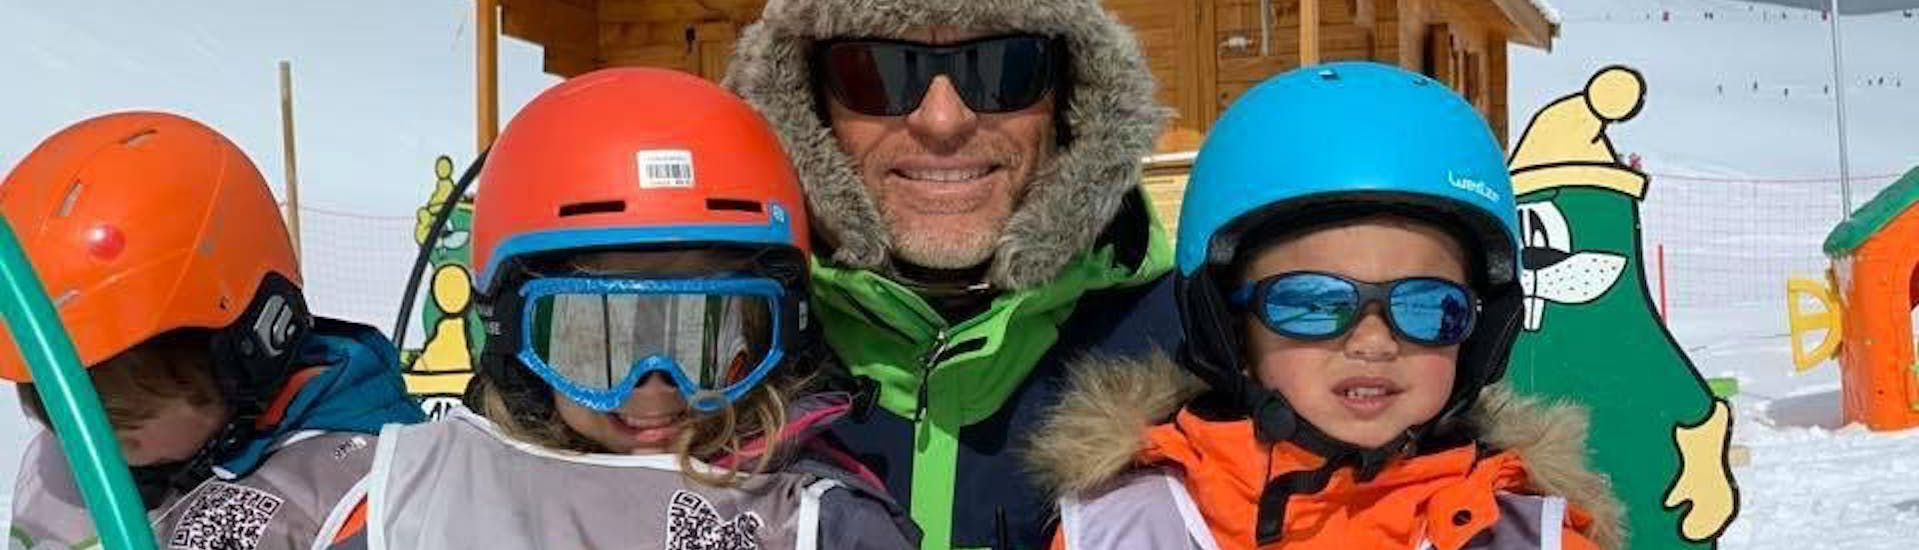 Kids are following Kids Ski Lessons (4-12 y.) - Holidays - Afternoon with our partner EasySki Alpe d'Huez.